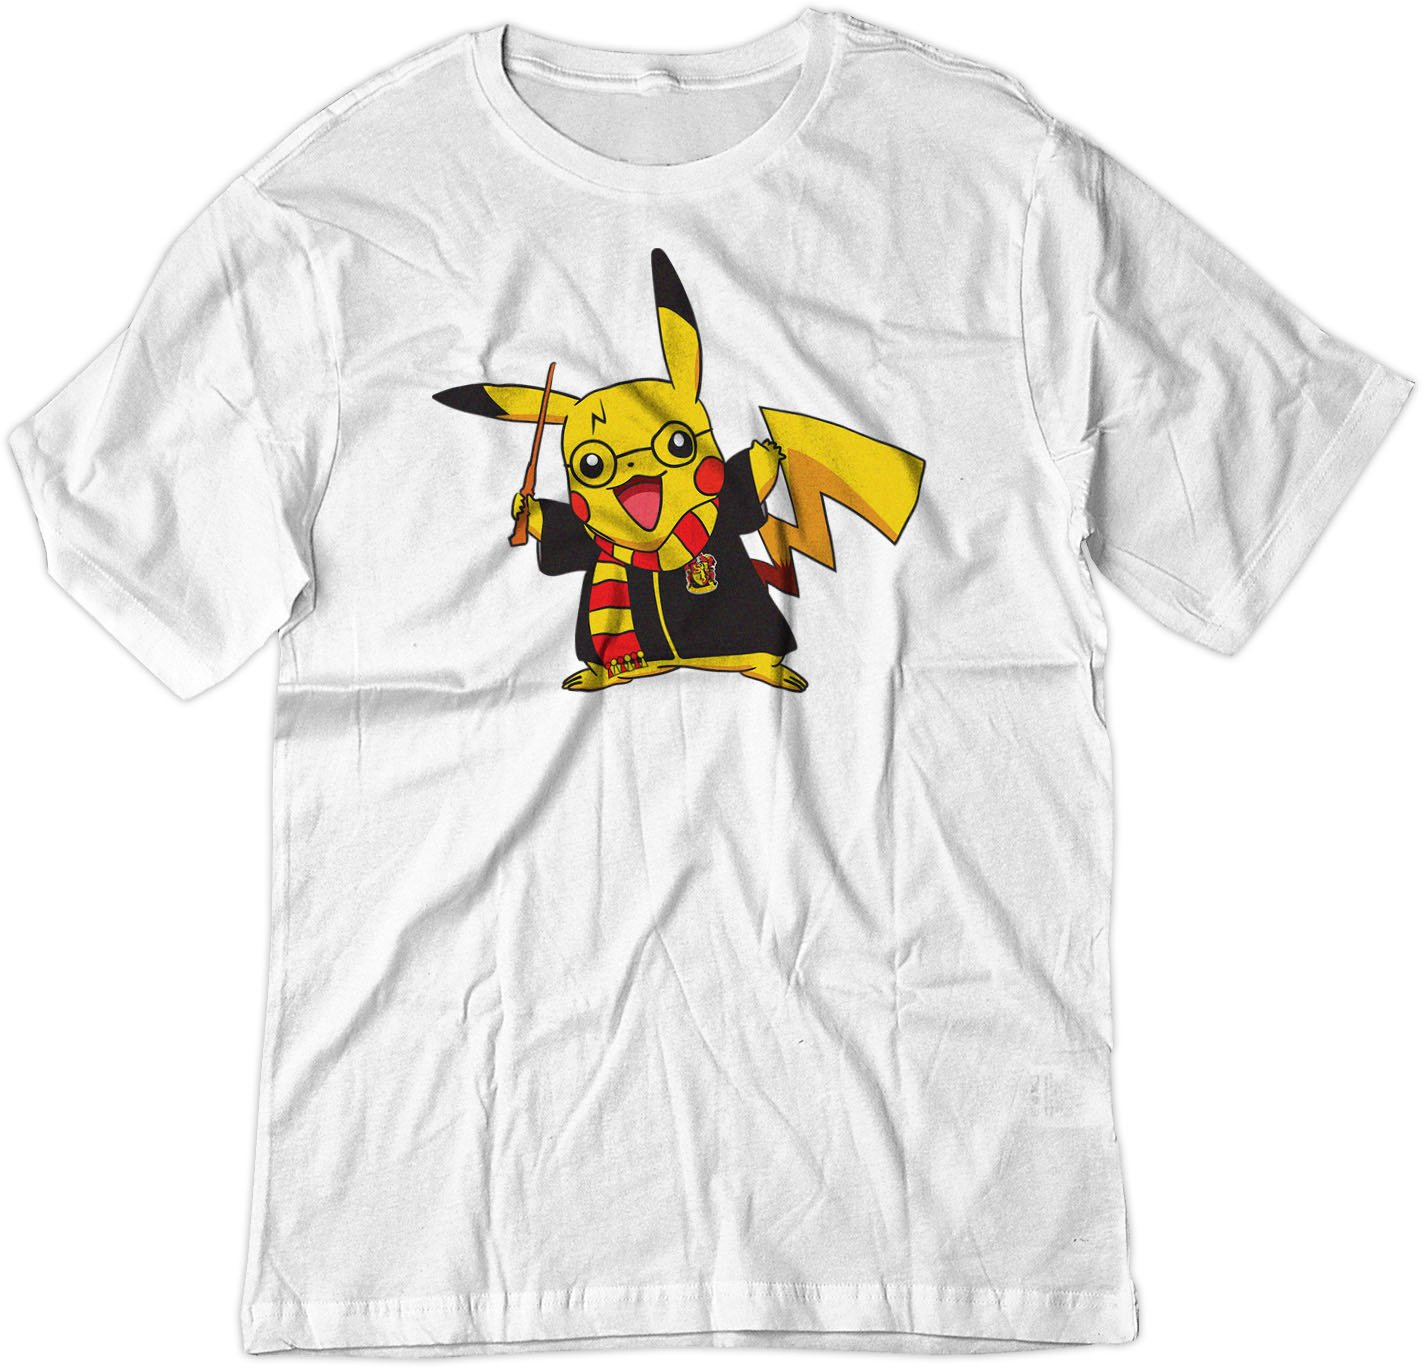 6cc61efe BSW Youth Pikachu Potter Pokemon Harry Potter Shirt 5317-1Y Holiday ...